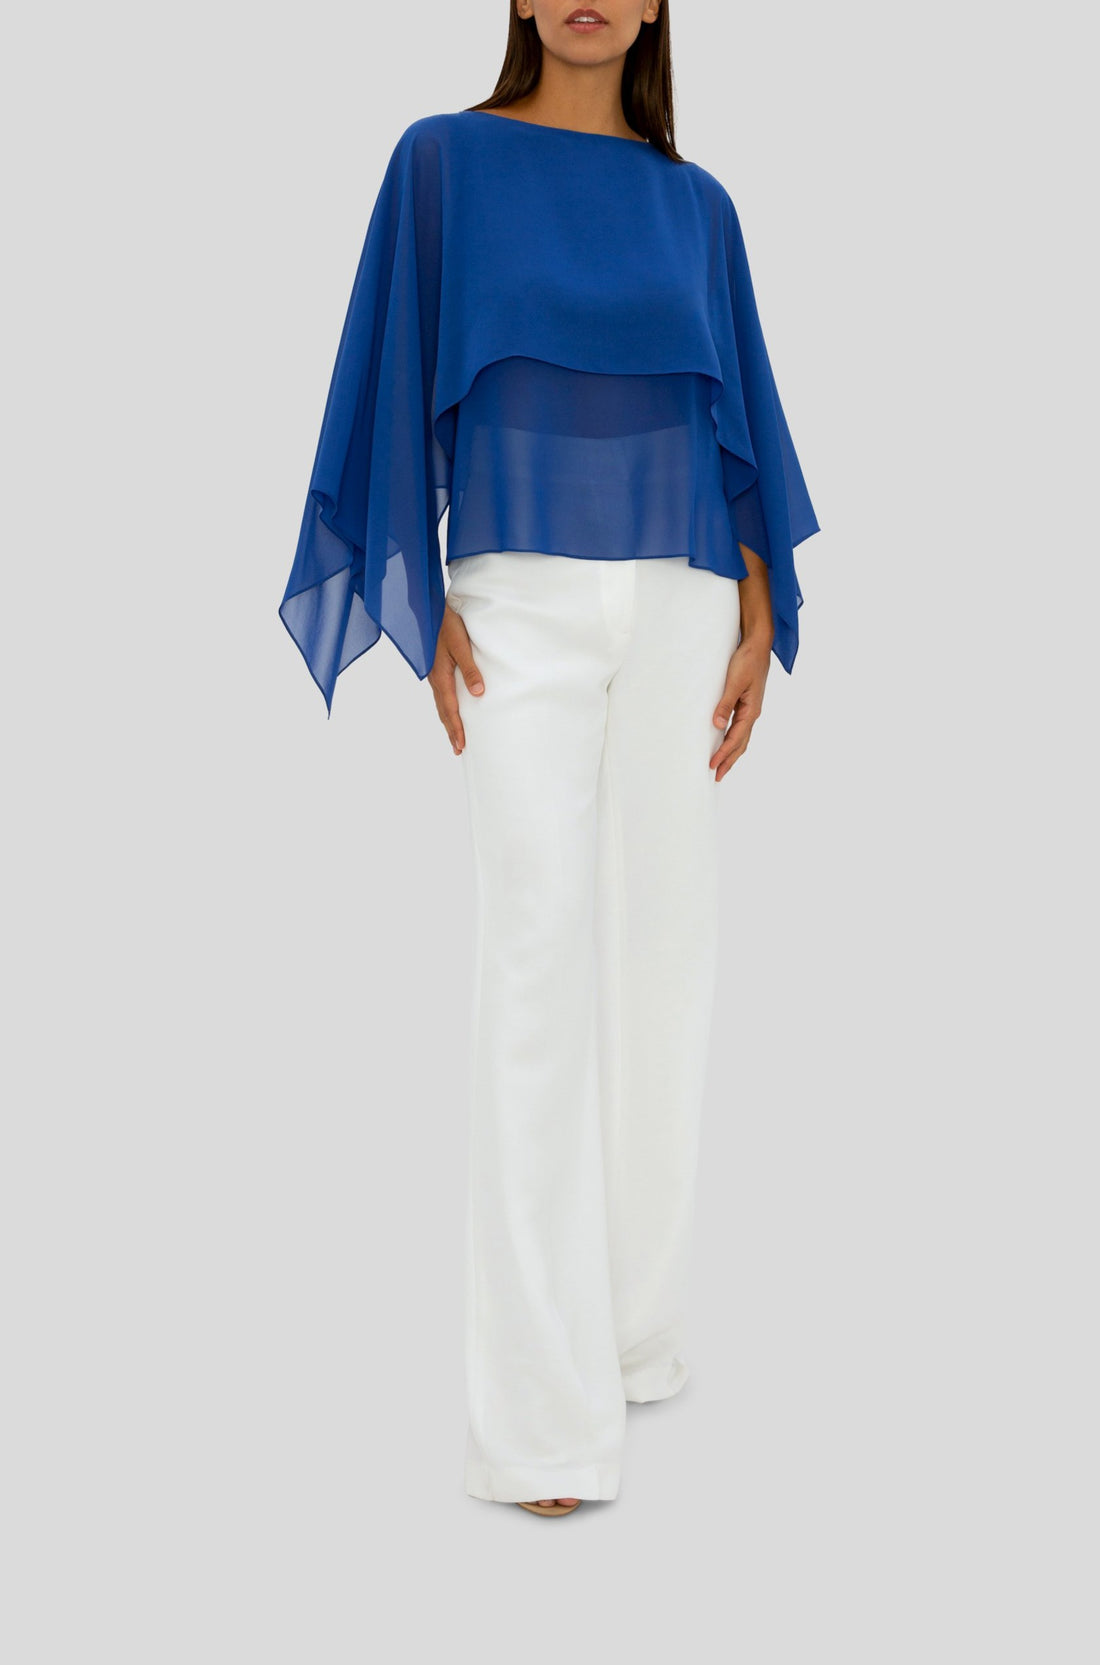 THE COBALT WHIMSICAL TOP